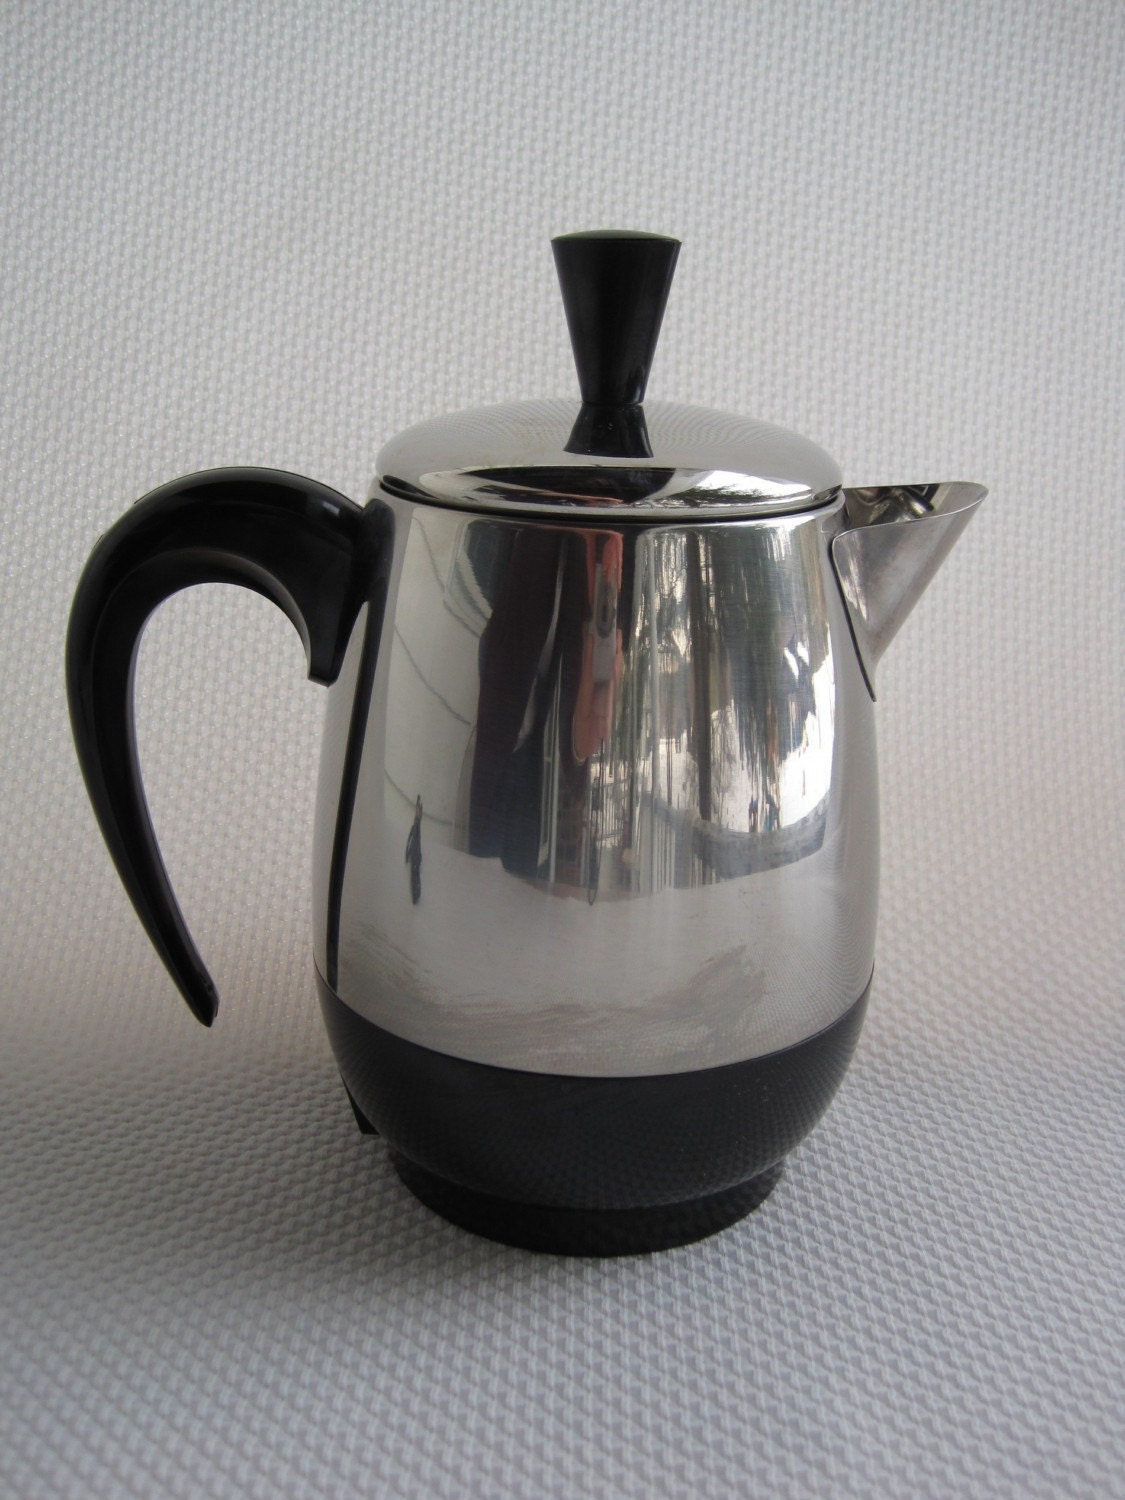 Vintage Farberware Superfast Electric Coffee Pot By